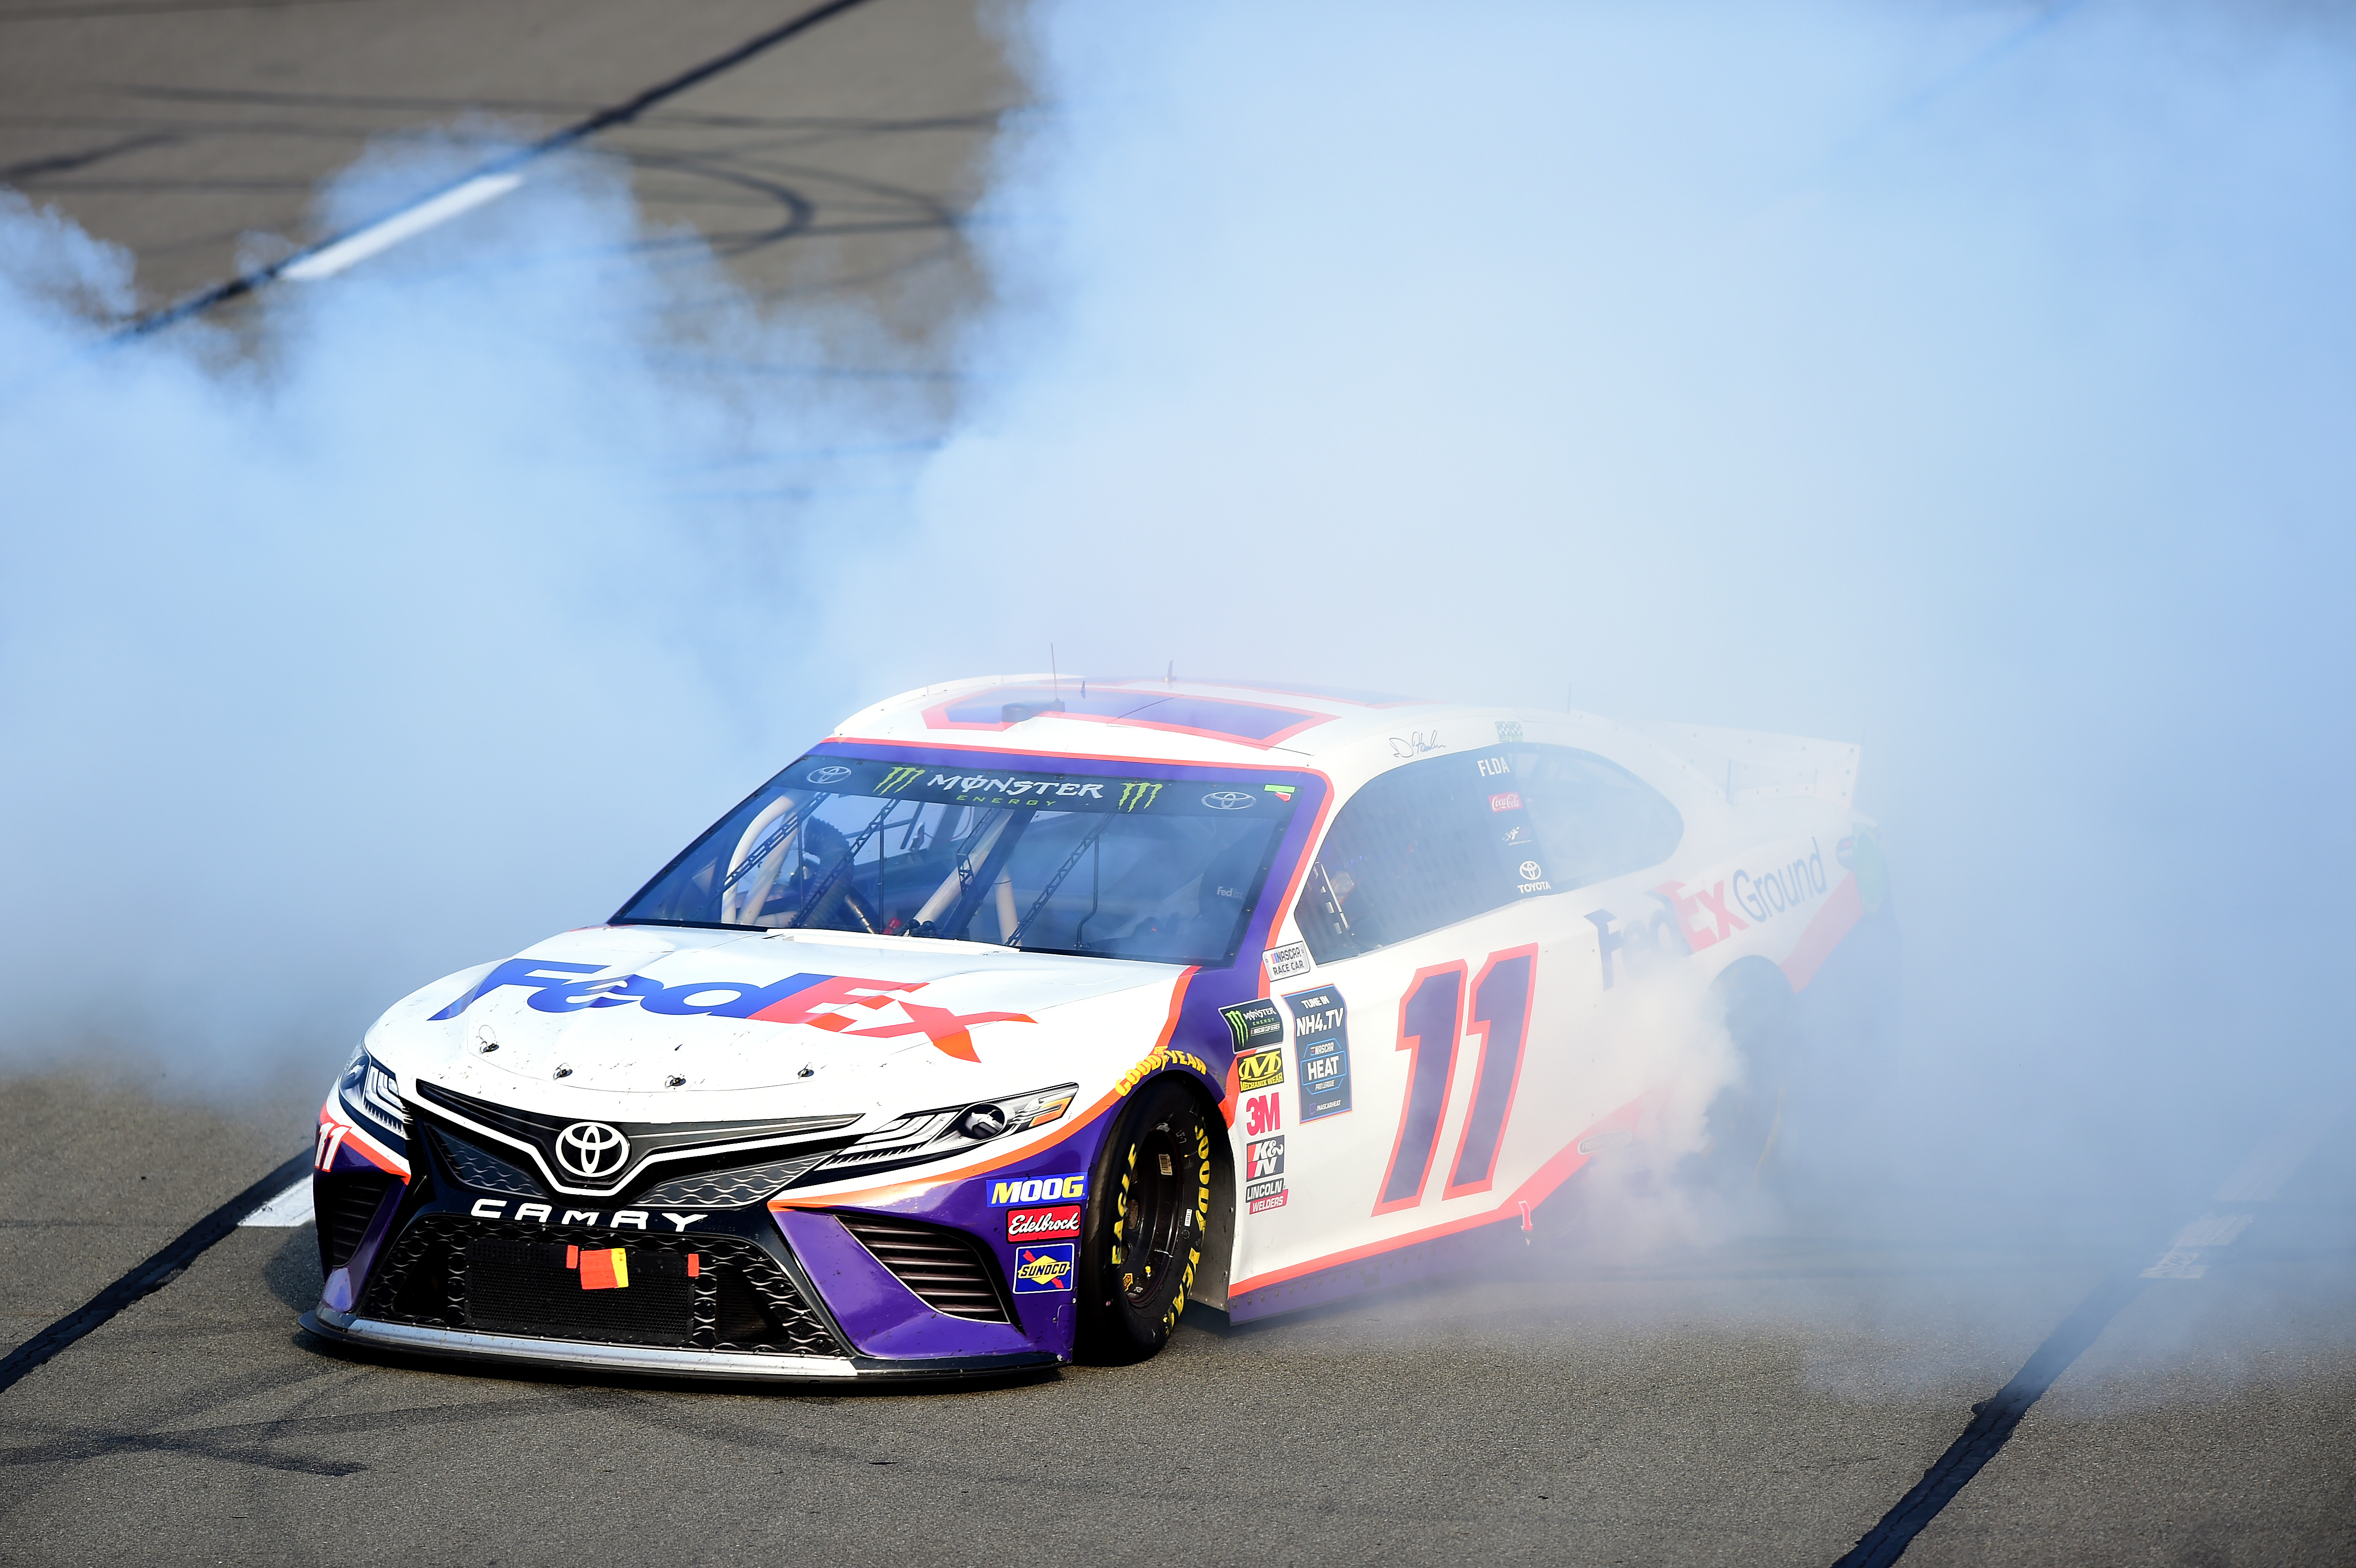 Driver Denny Hamlin celebrates with a burnout after winning the Monster Energy NASCAR Cup Series Gander RV 400